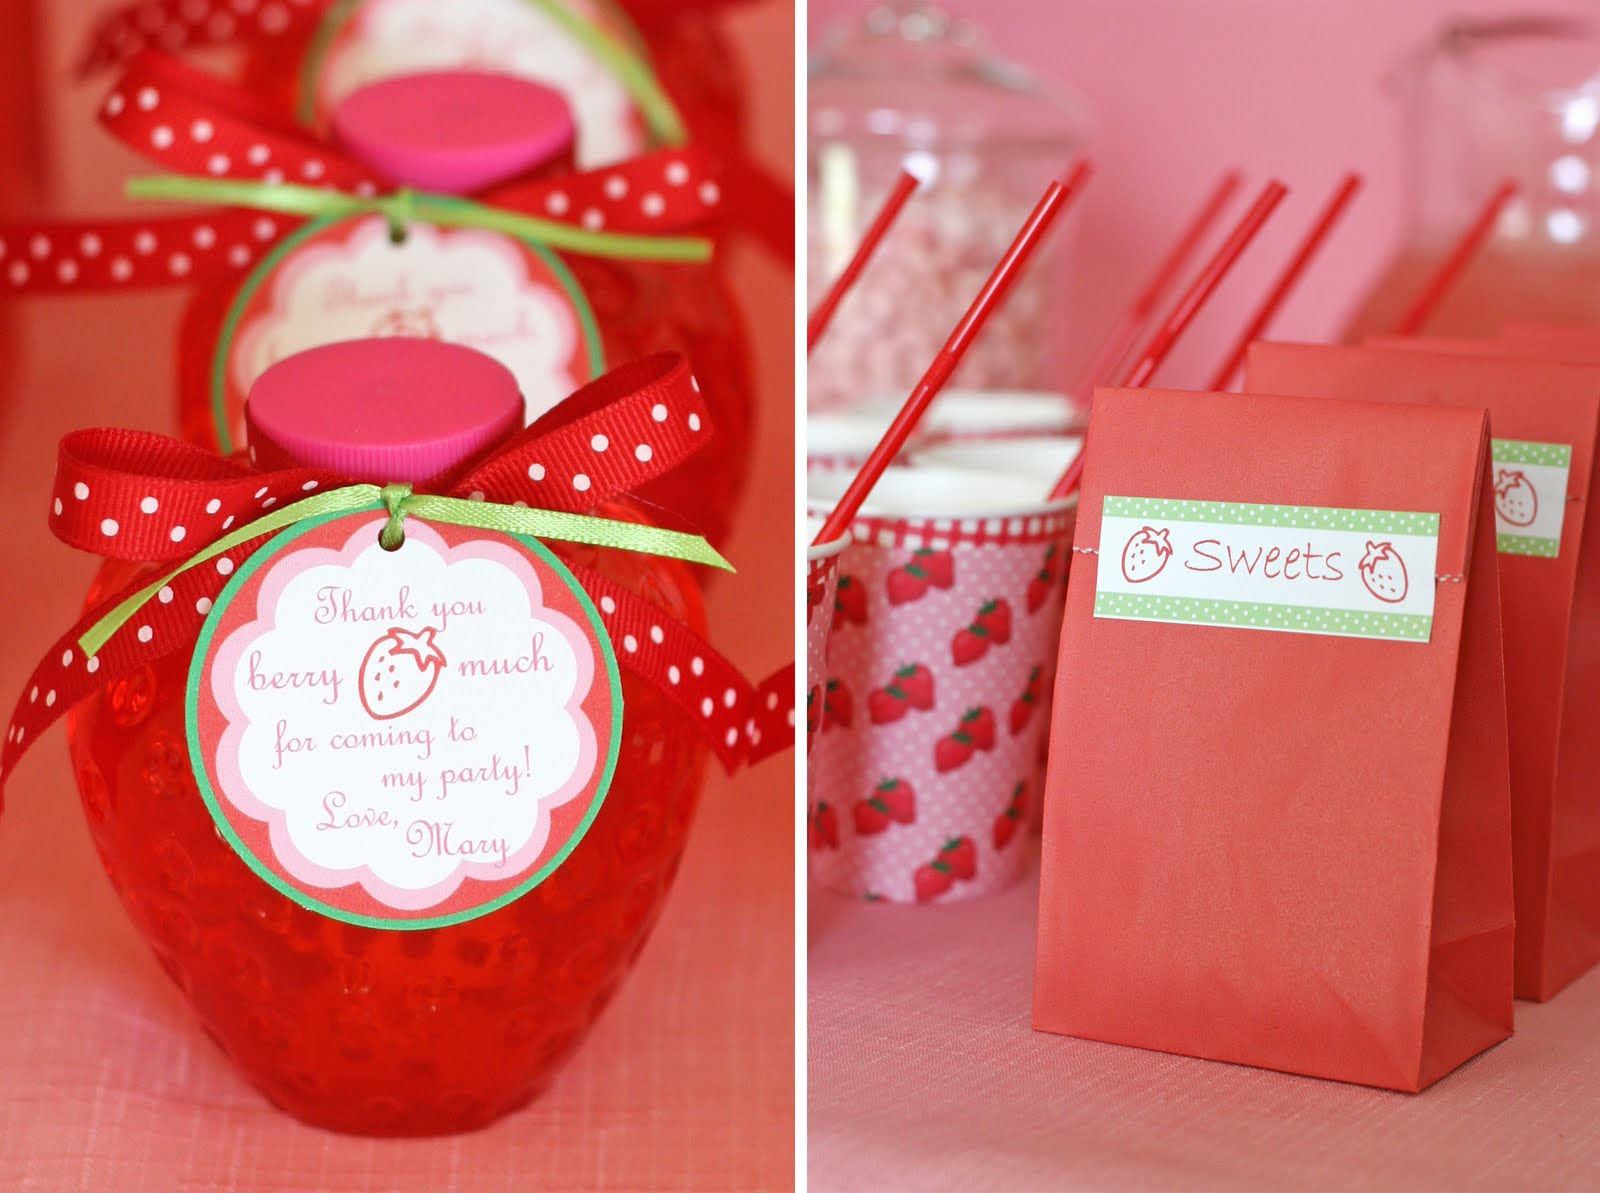 Parties} Sweet Strawberry Party – Glorious Treats